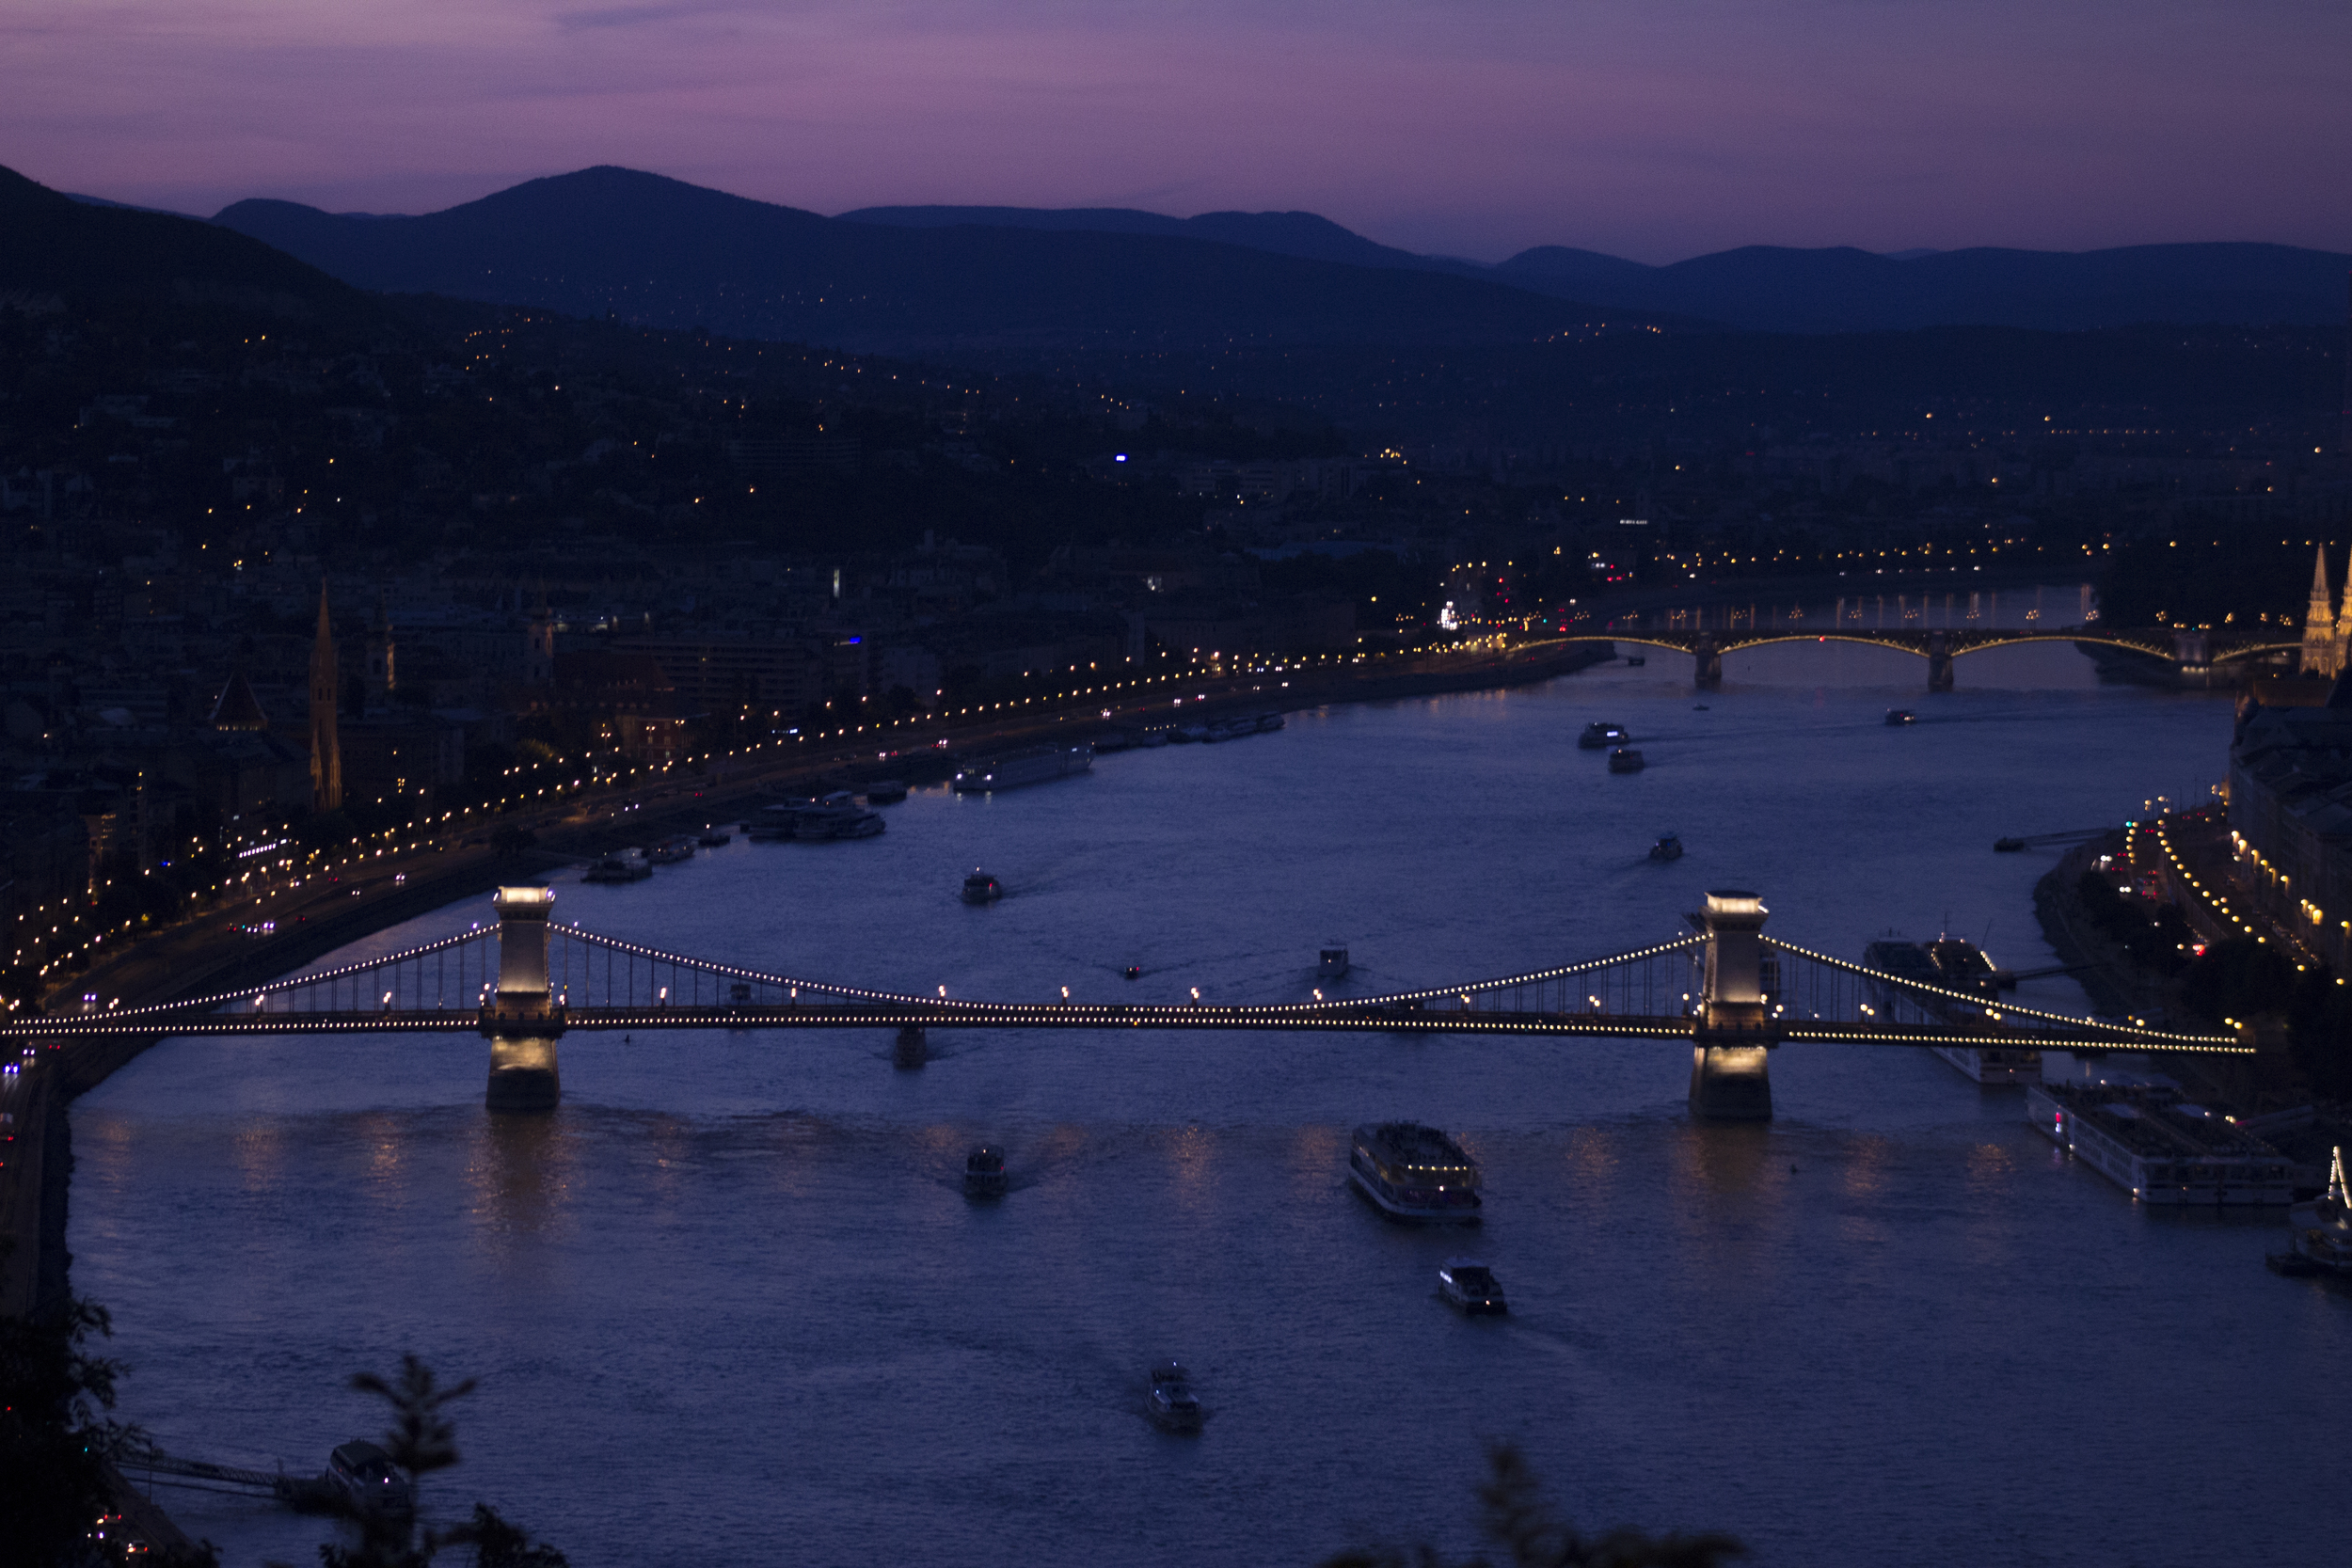 This is a view of the famous Szechenyi Bridge (or Chain Bridge) from the south looking north.